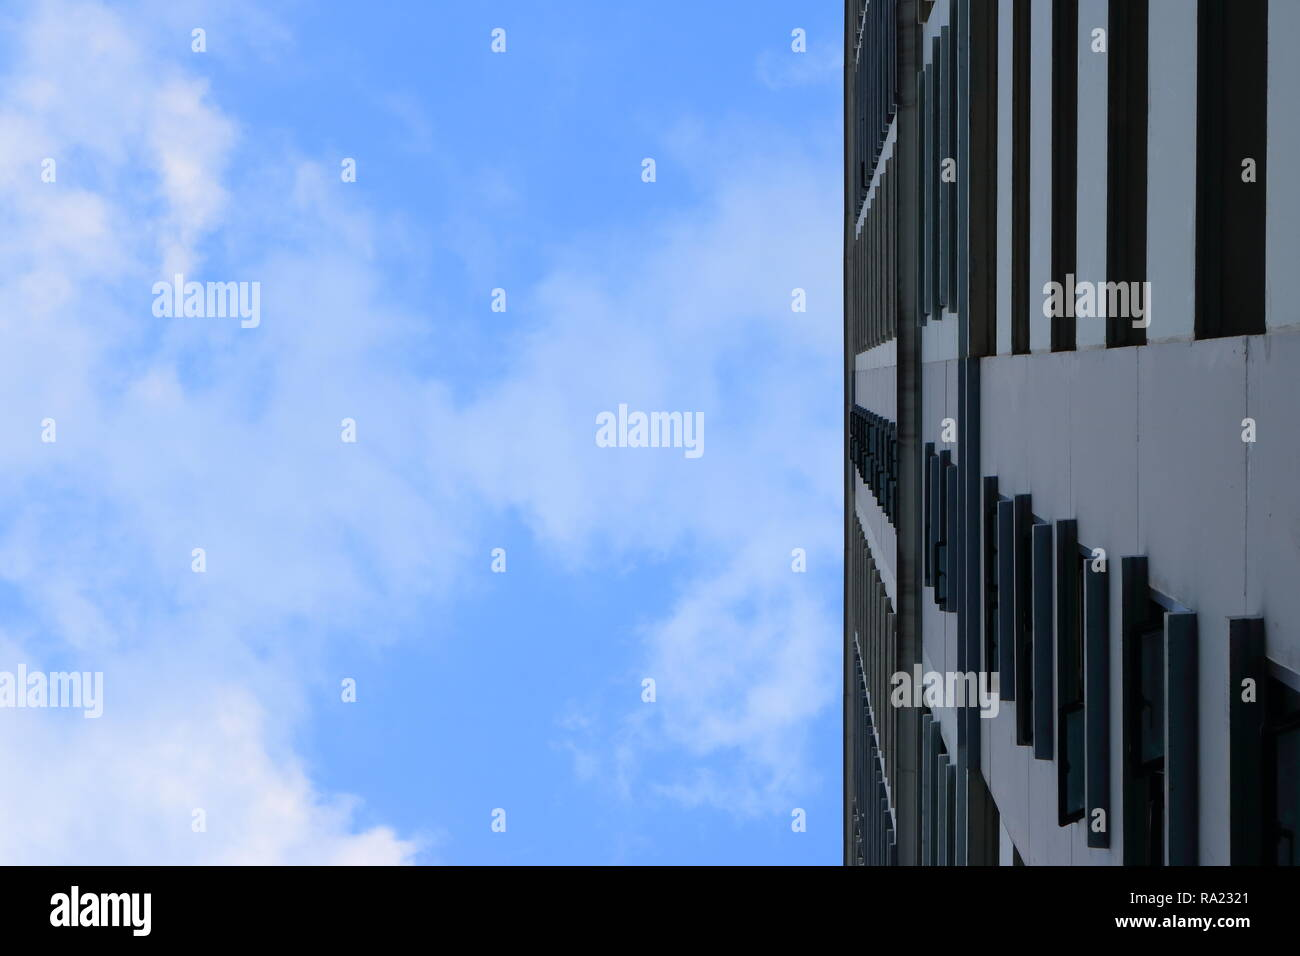 blue sky with white clouds above high building Stock Photo